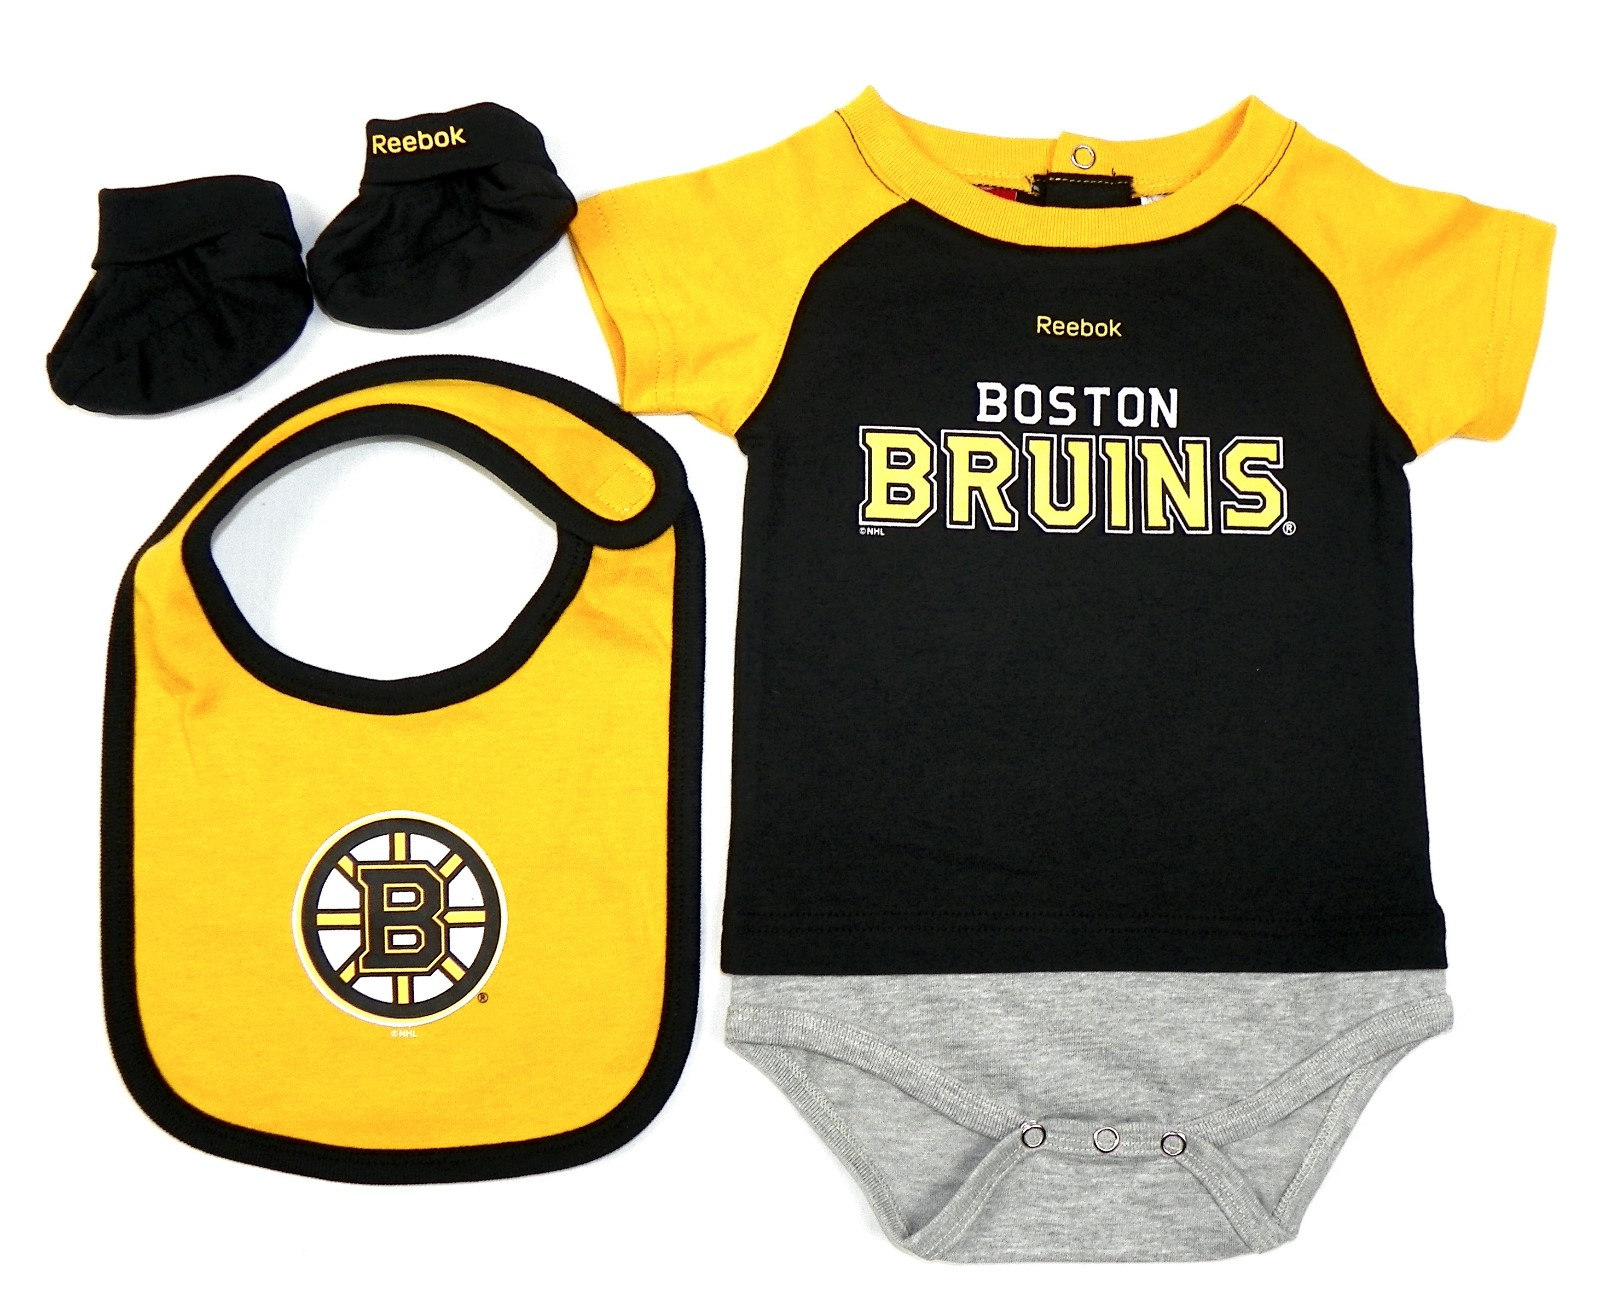 Boston Bruins NHL Infant Lil Jersey Creeper, Bib, Bootie Set by